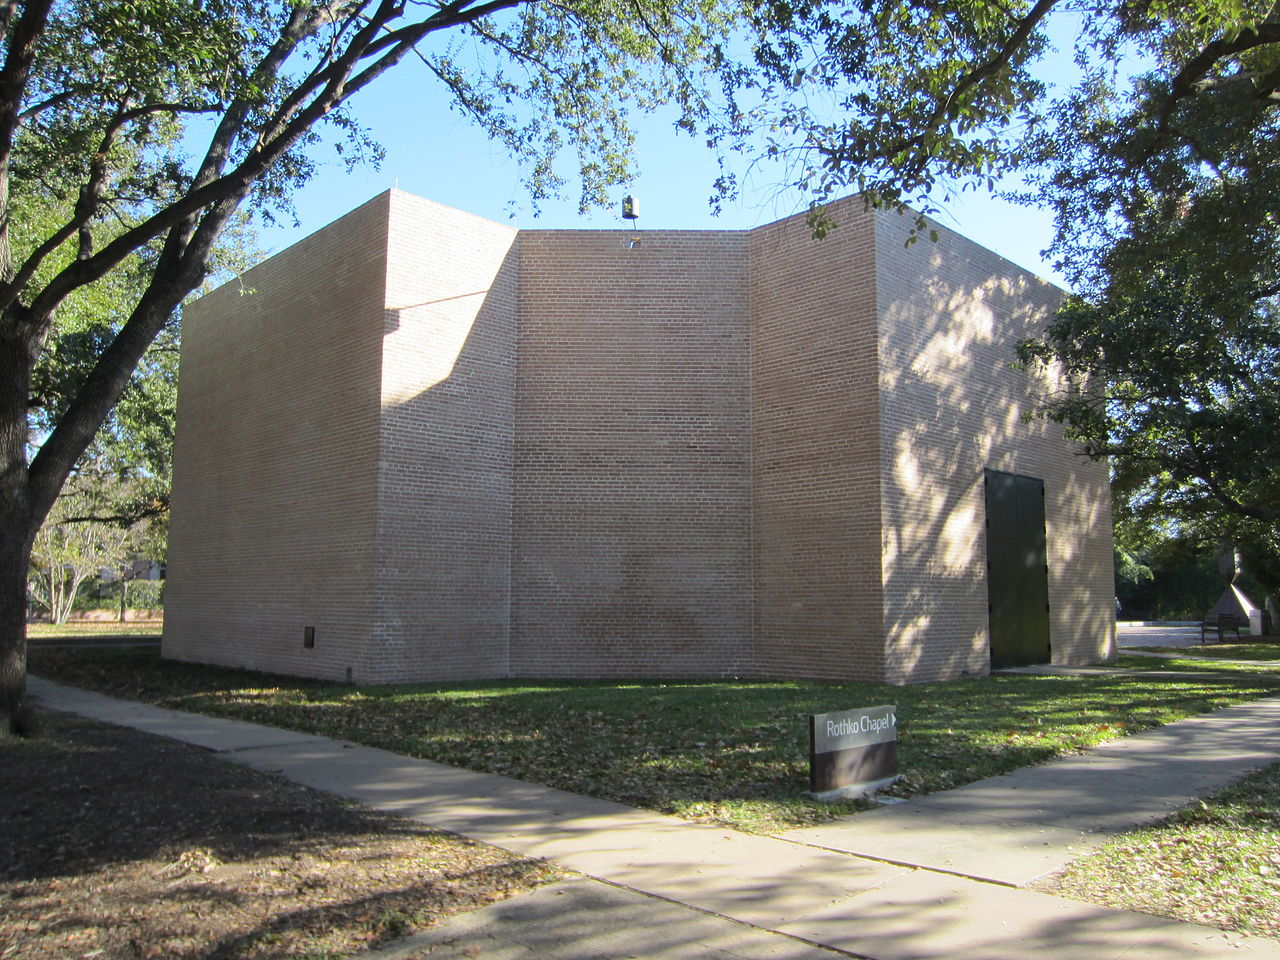 Rothko Chapel, Houston (by AnotheBeliever, CC)